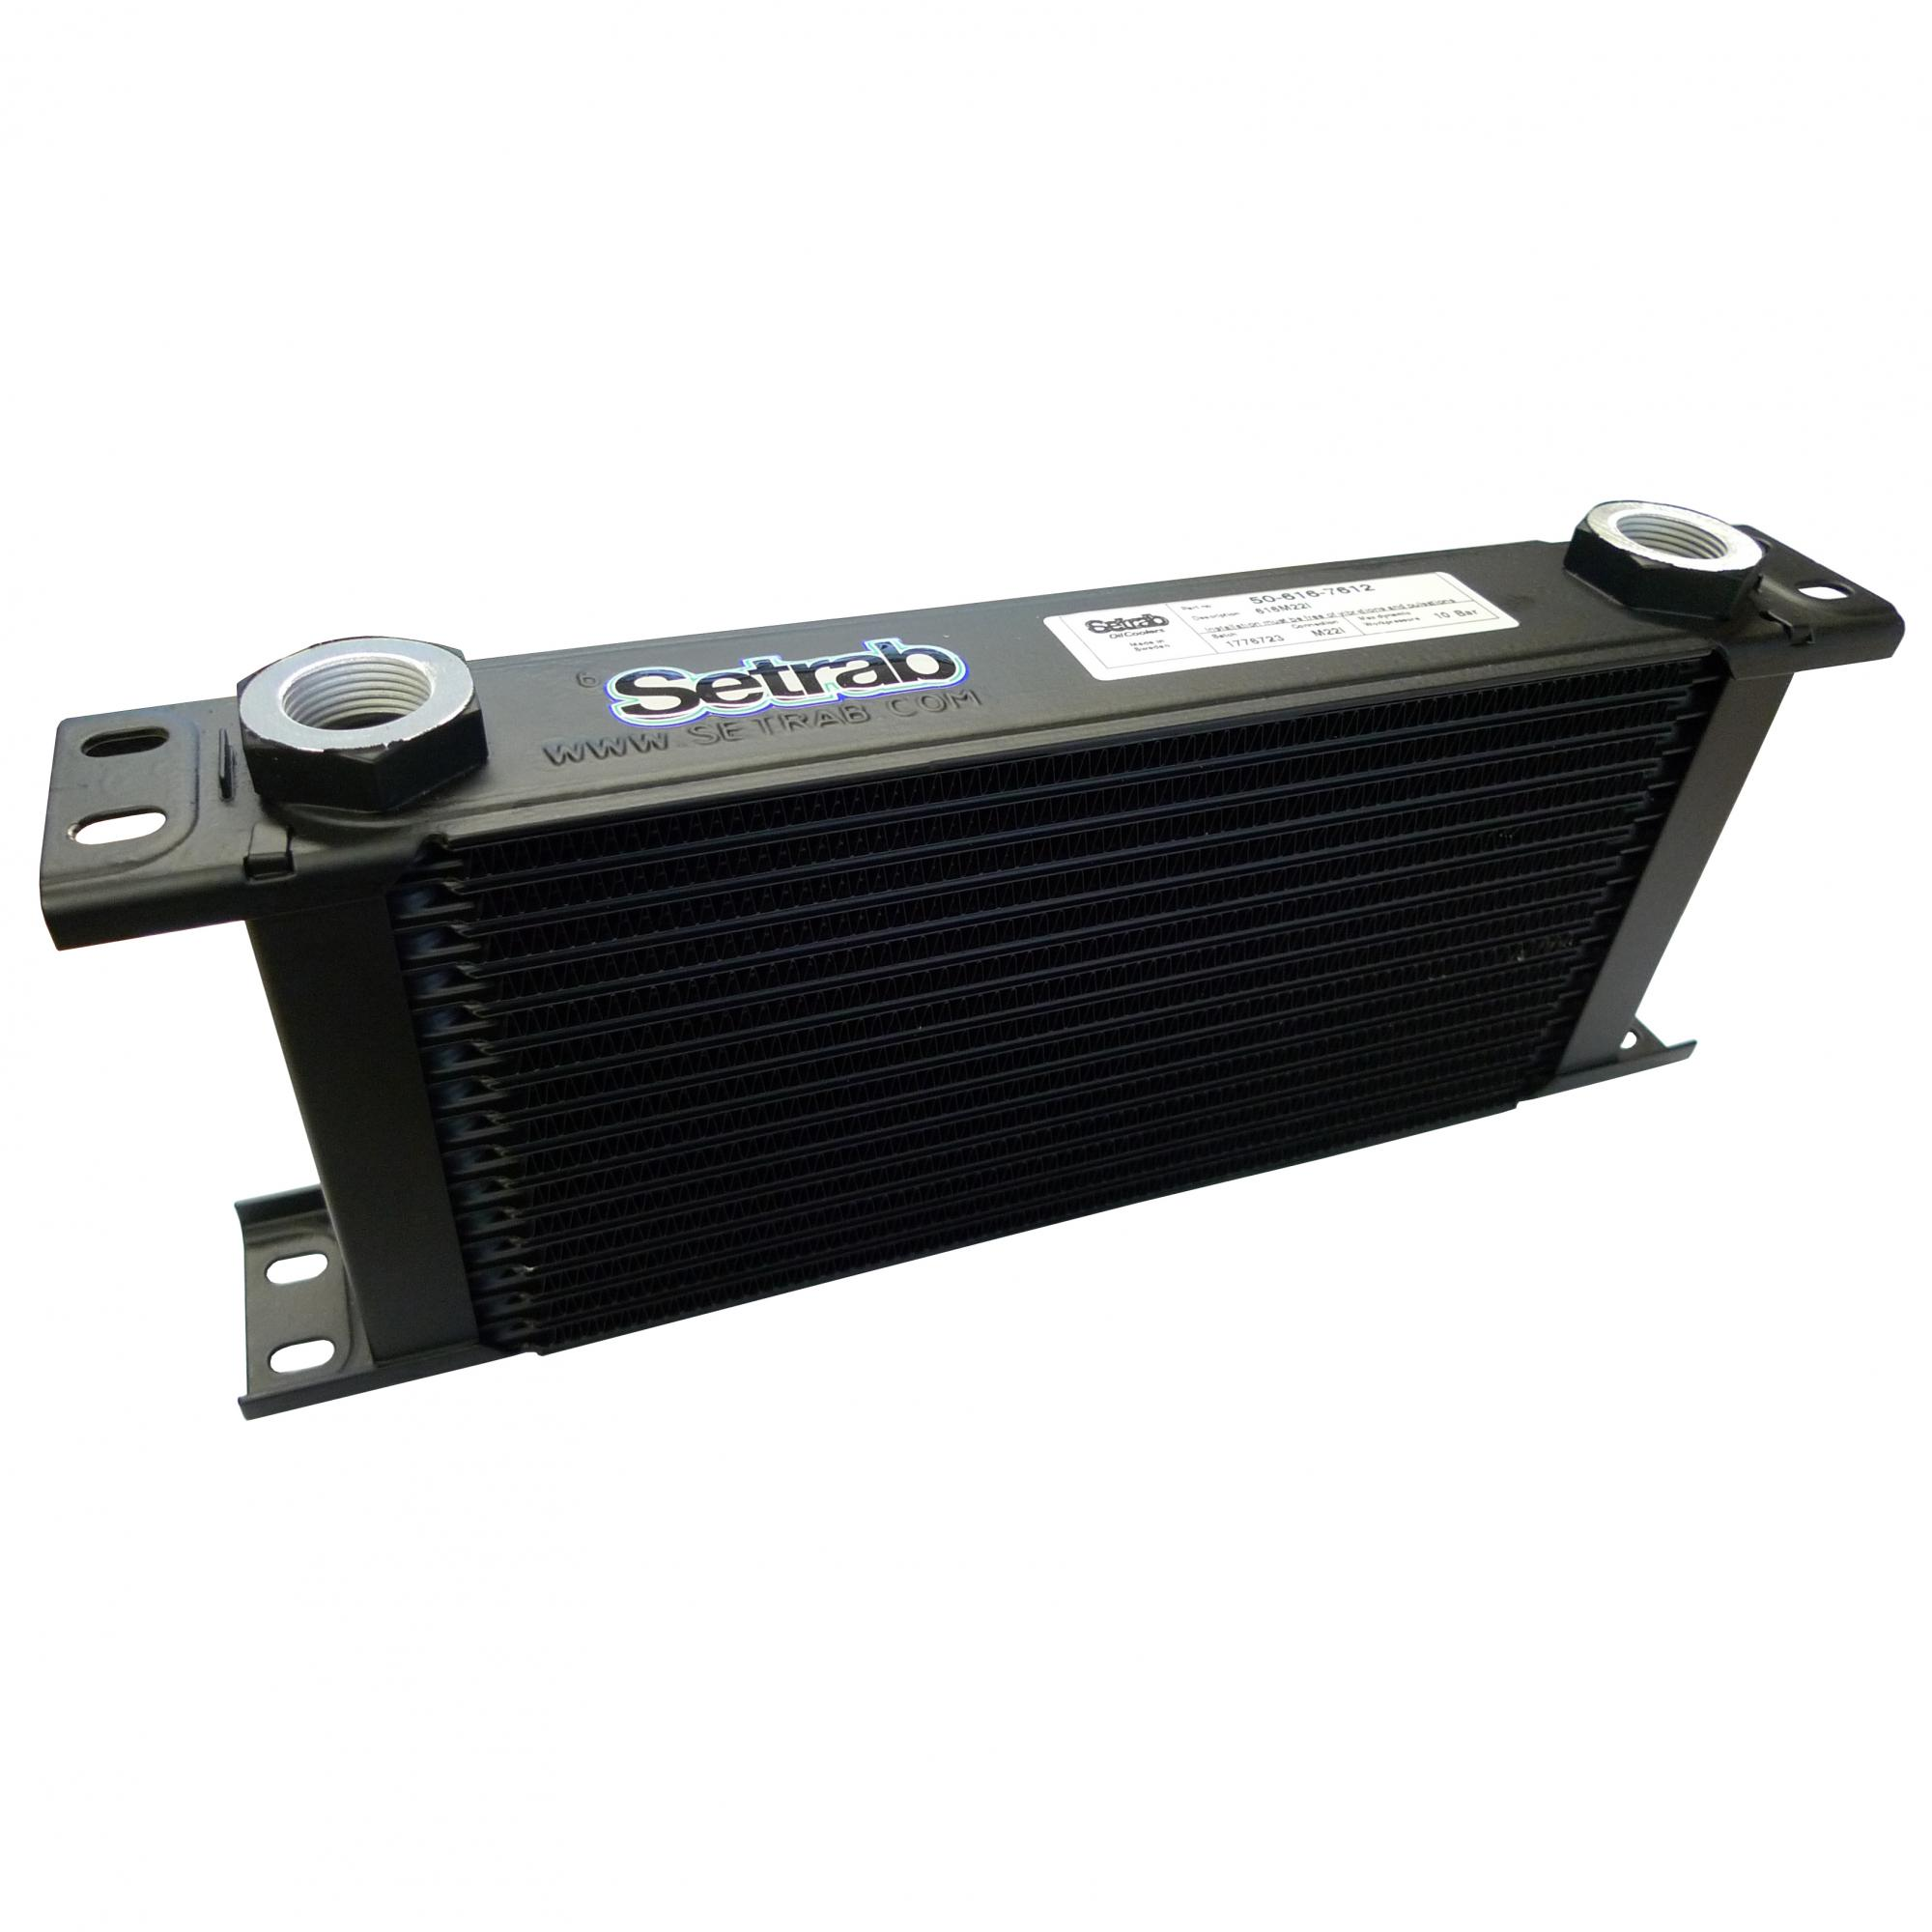 Setrab oil cooler. 19 Row oil cooler from Merlin Motorsport #4F5A7C